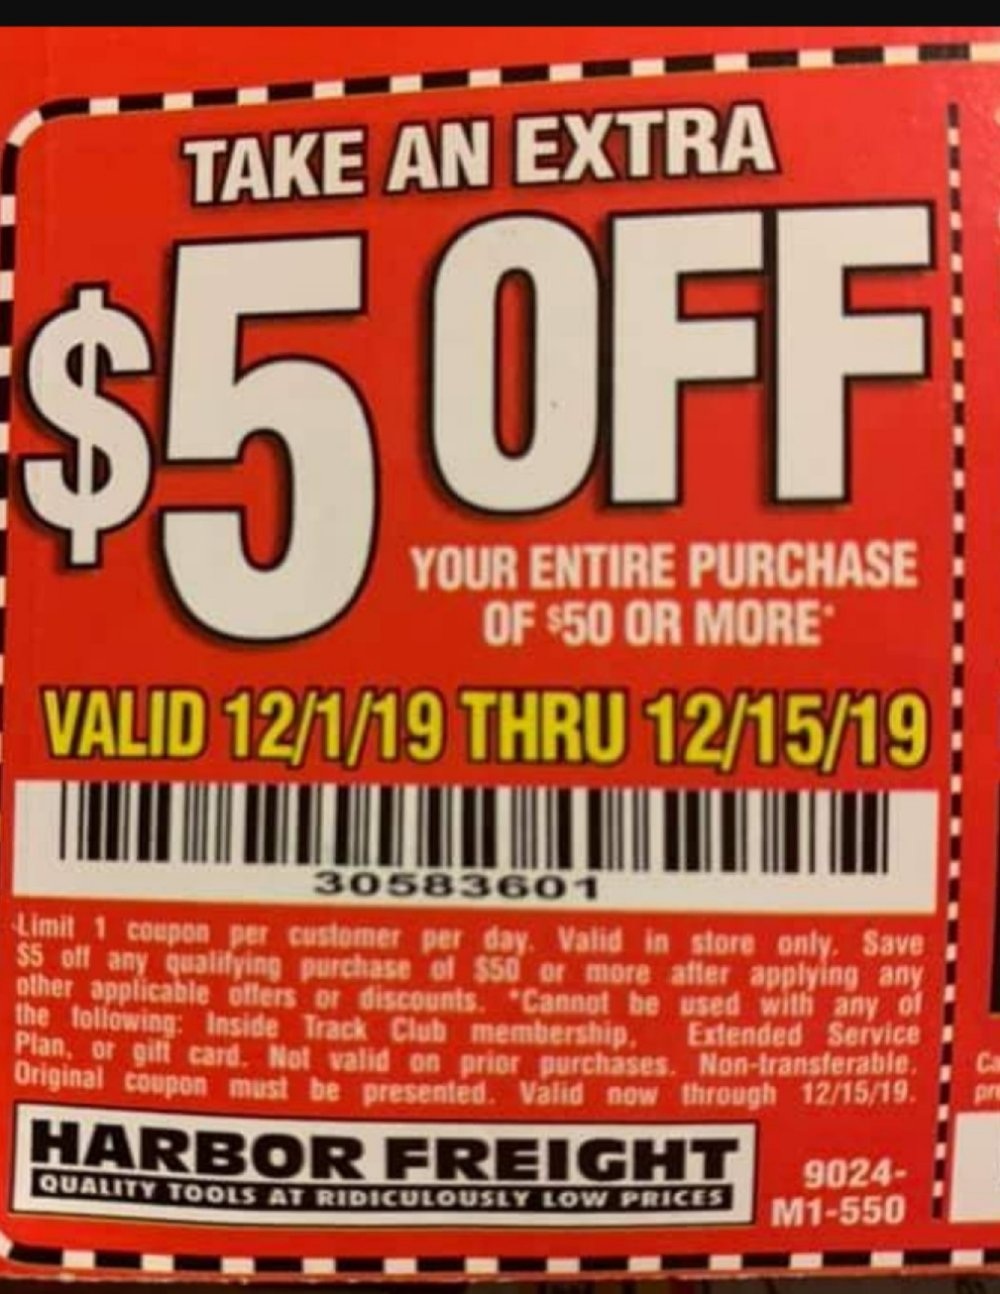 Harbor Freight Coupon, HF Coupons - 5% off over 50USD